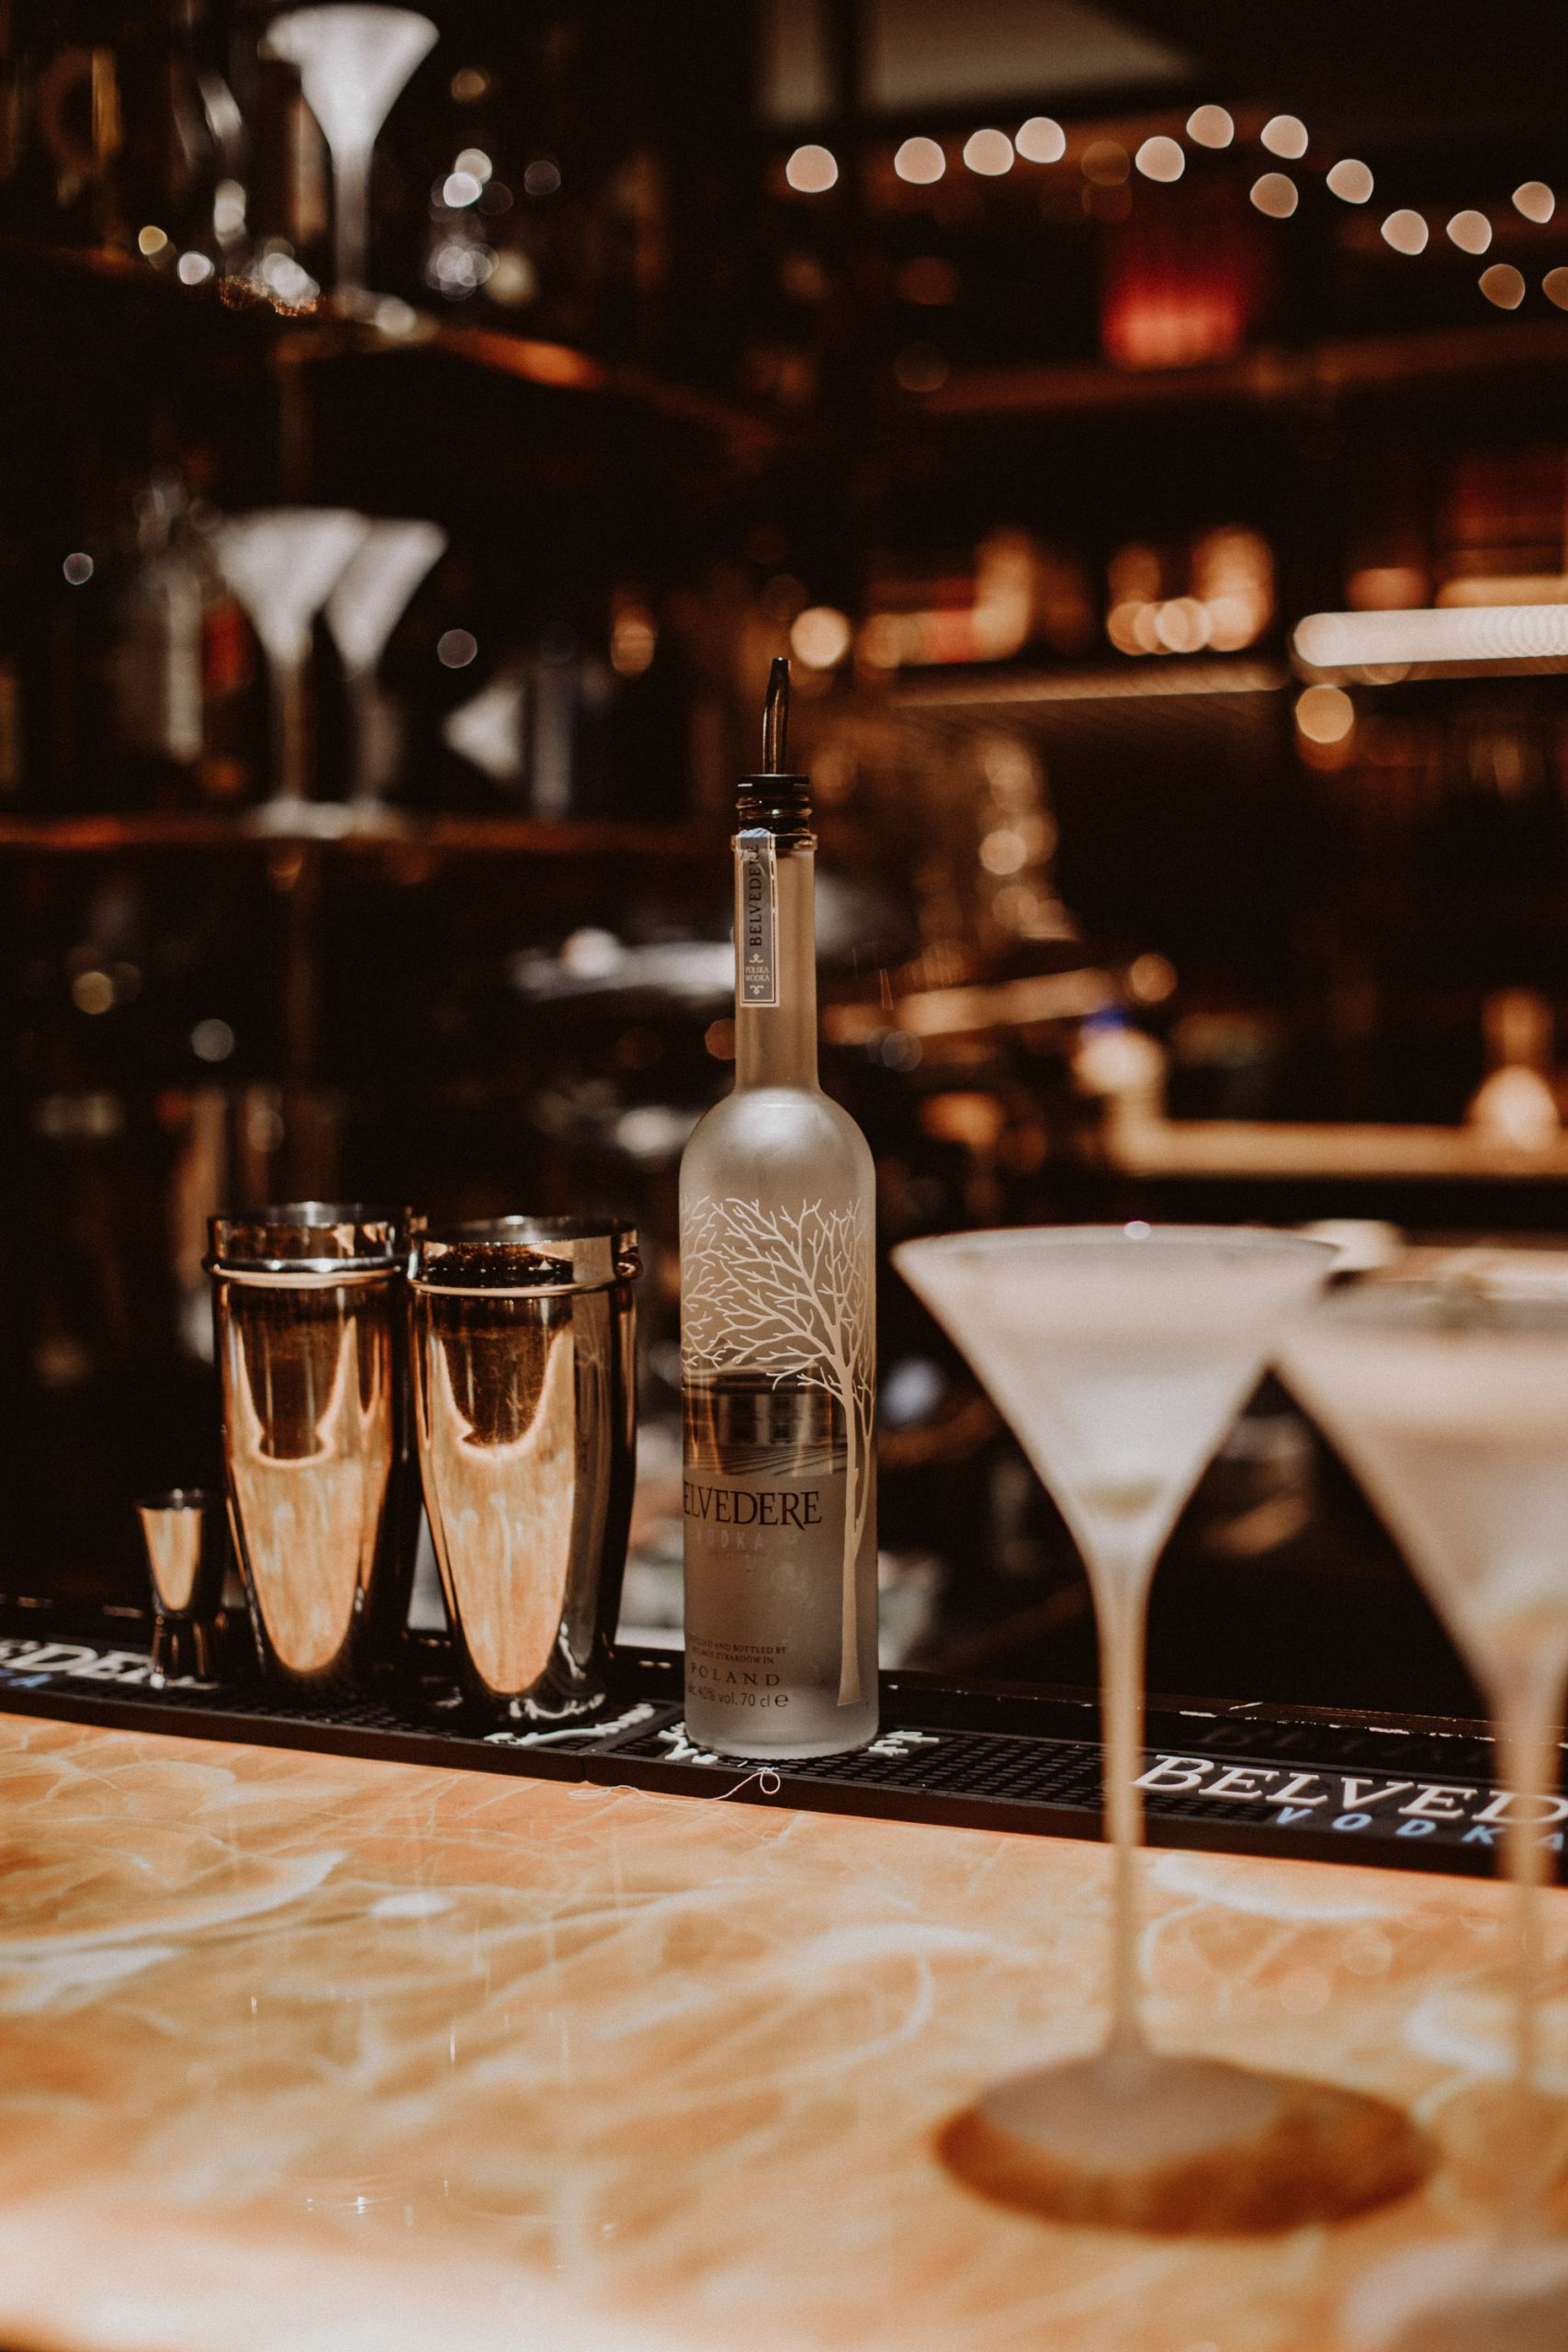 Belvedere 007 Martini | The Daily Dose